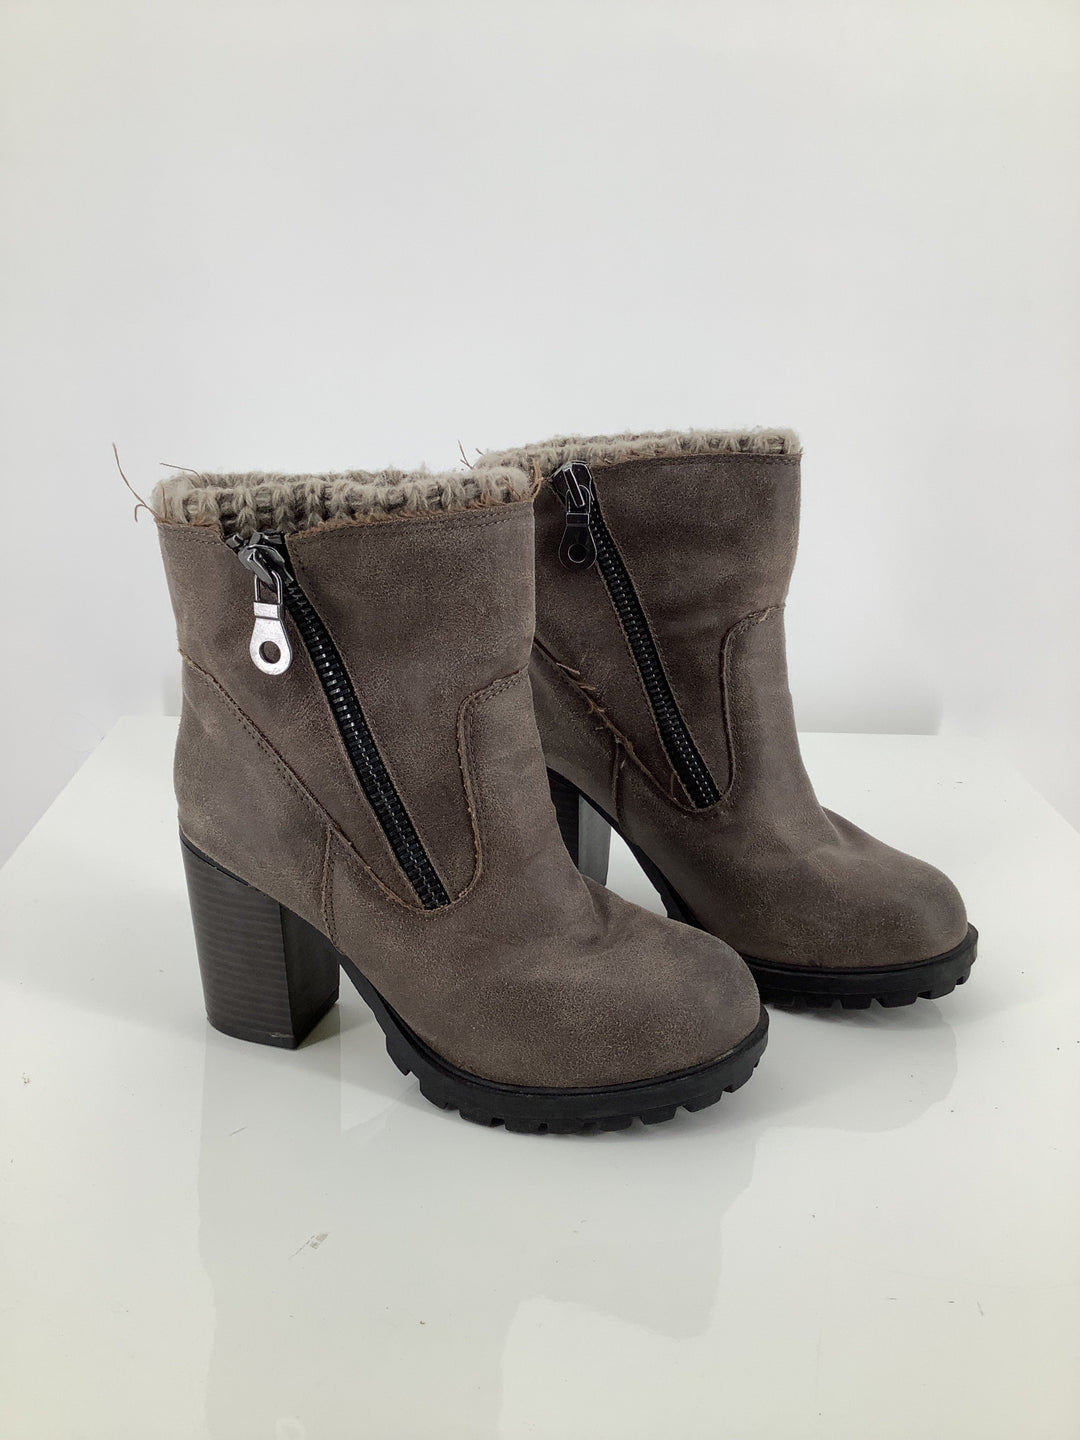 Primary Photo - brand: mossimo , style: boots ankle , color: taupe , size: 6.5 , sku: 105-3752-24958